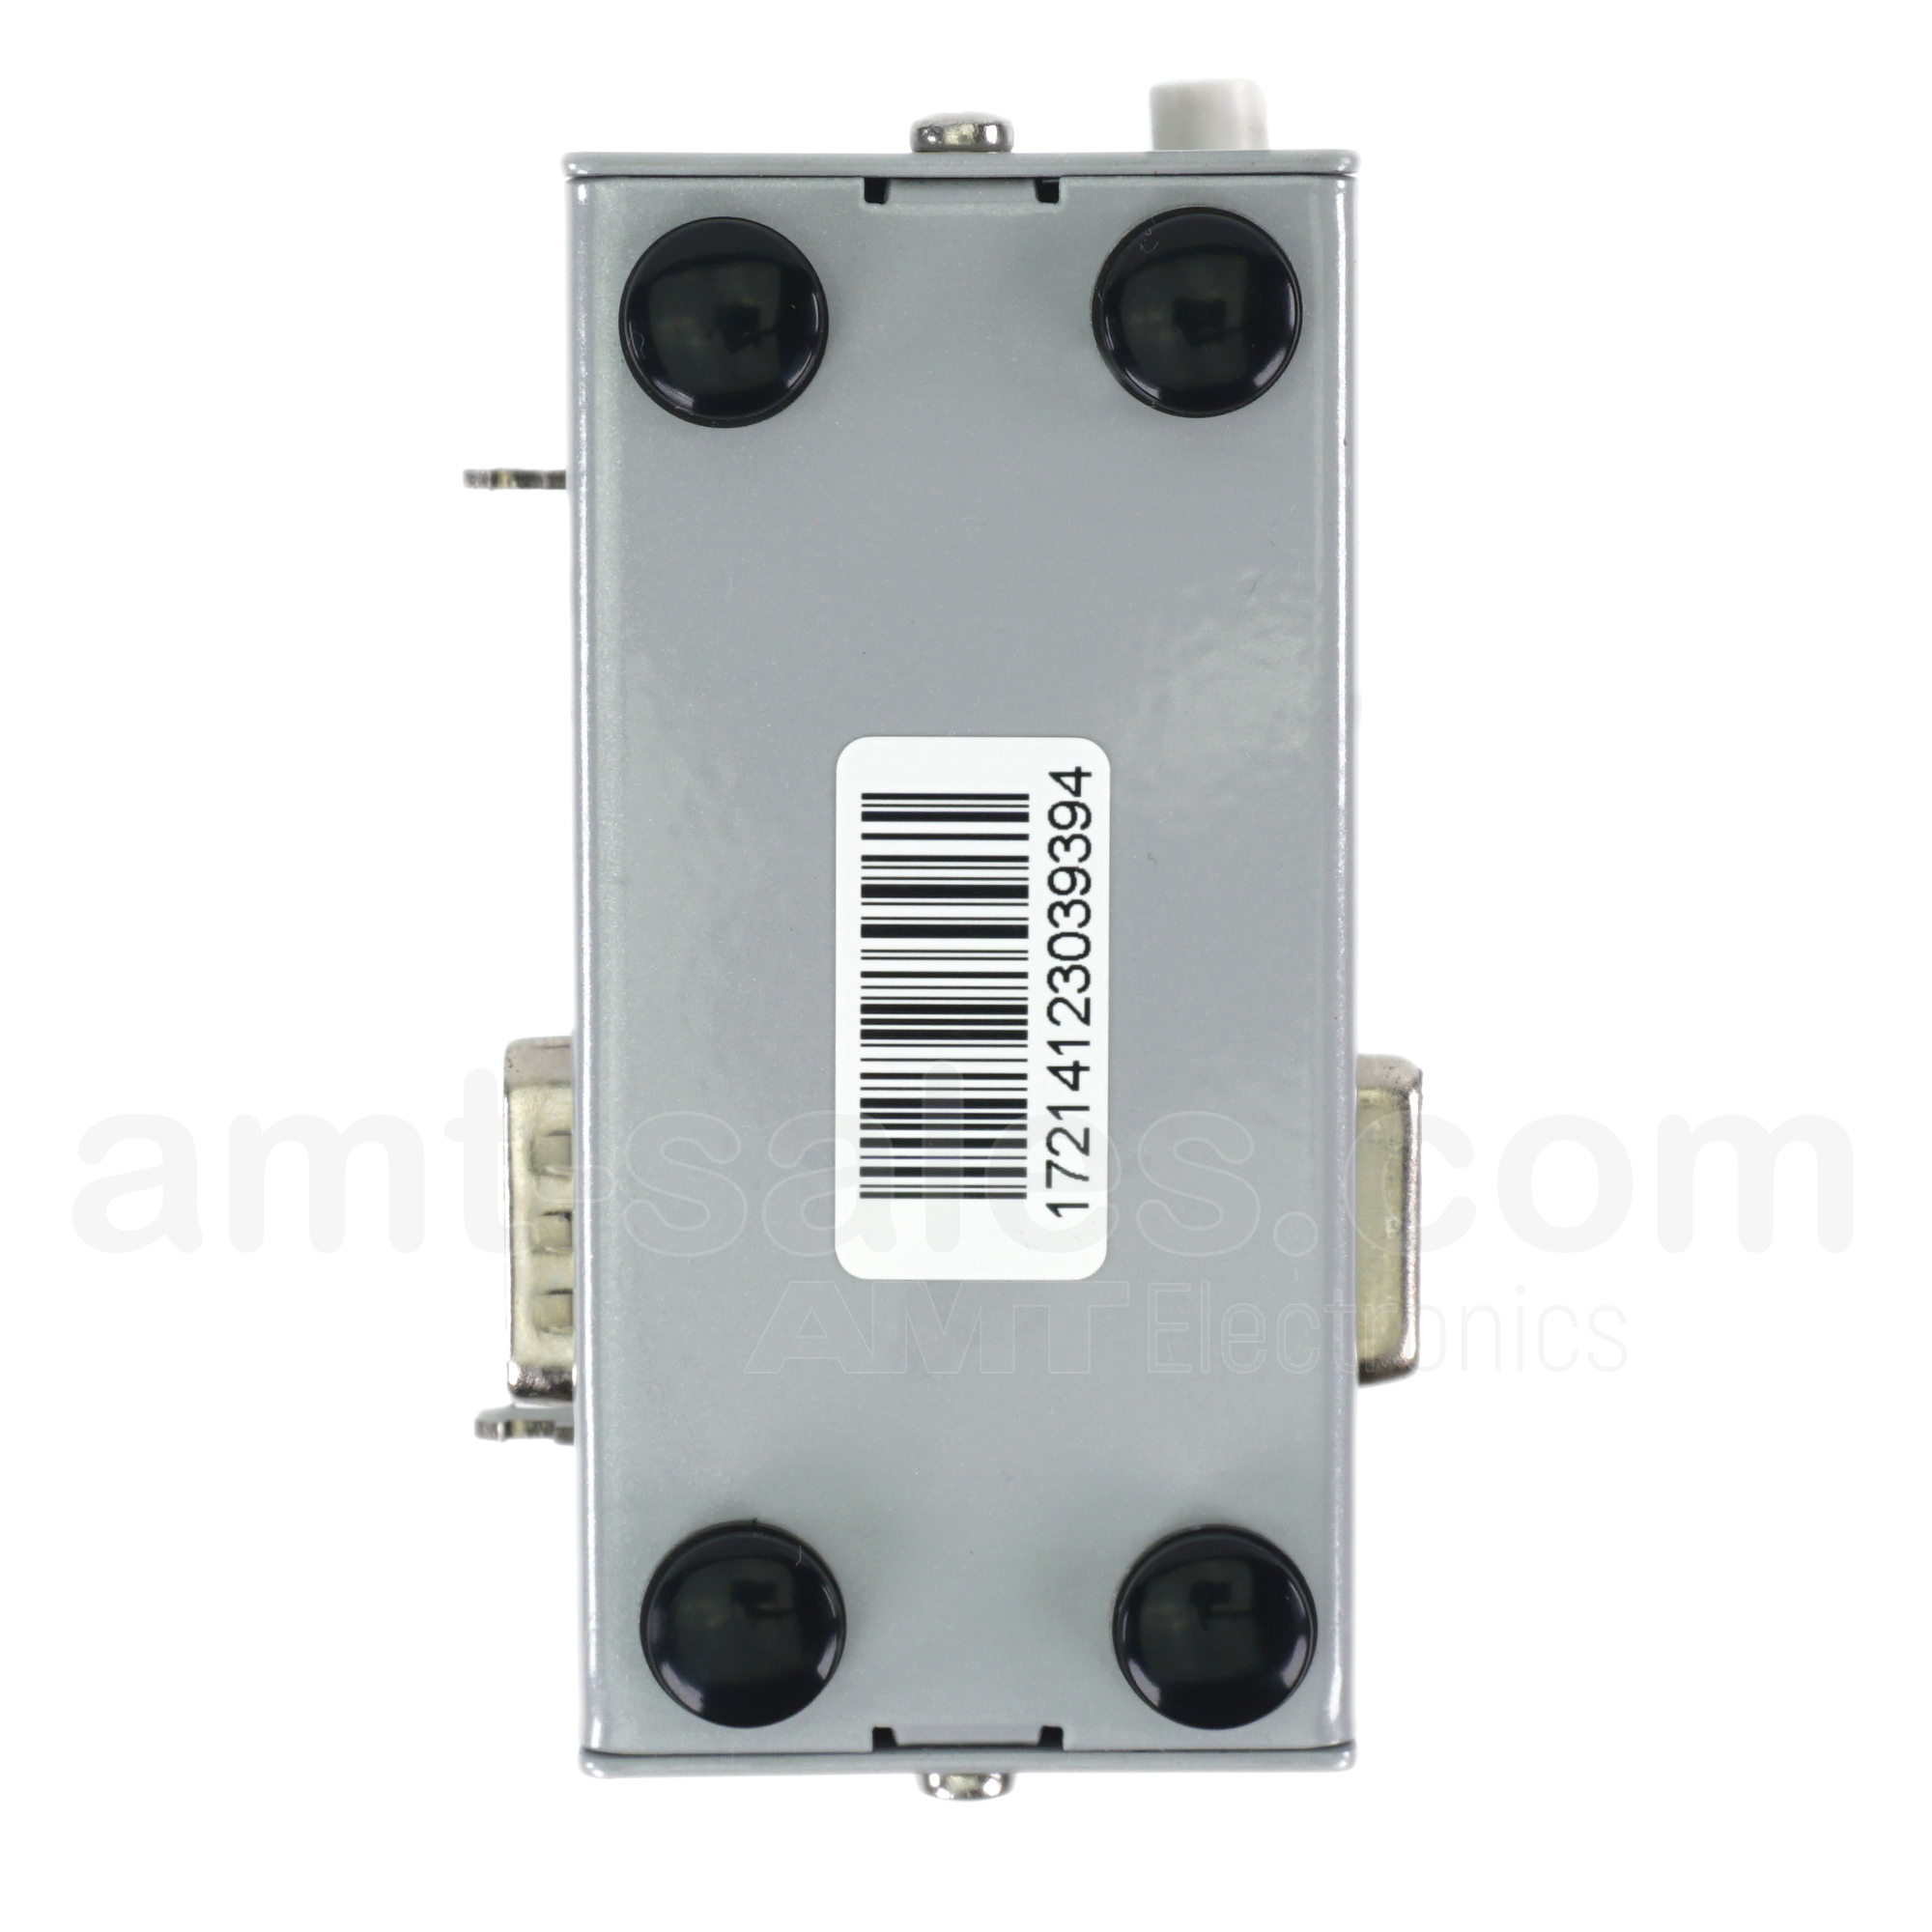 AMT SOW PS-2 DC-18V 2x100mA - power supply module